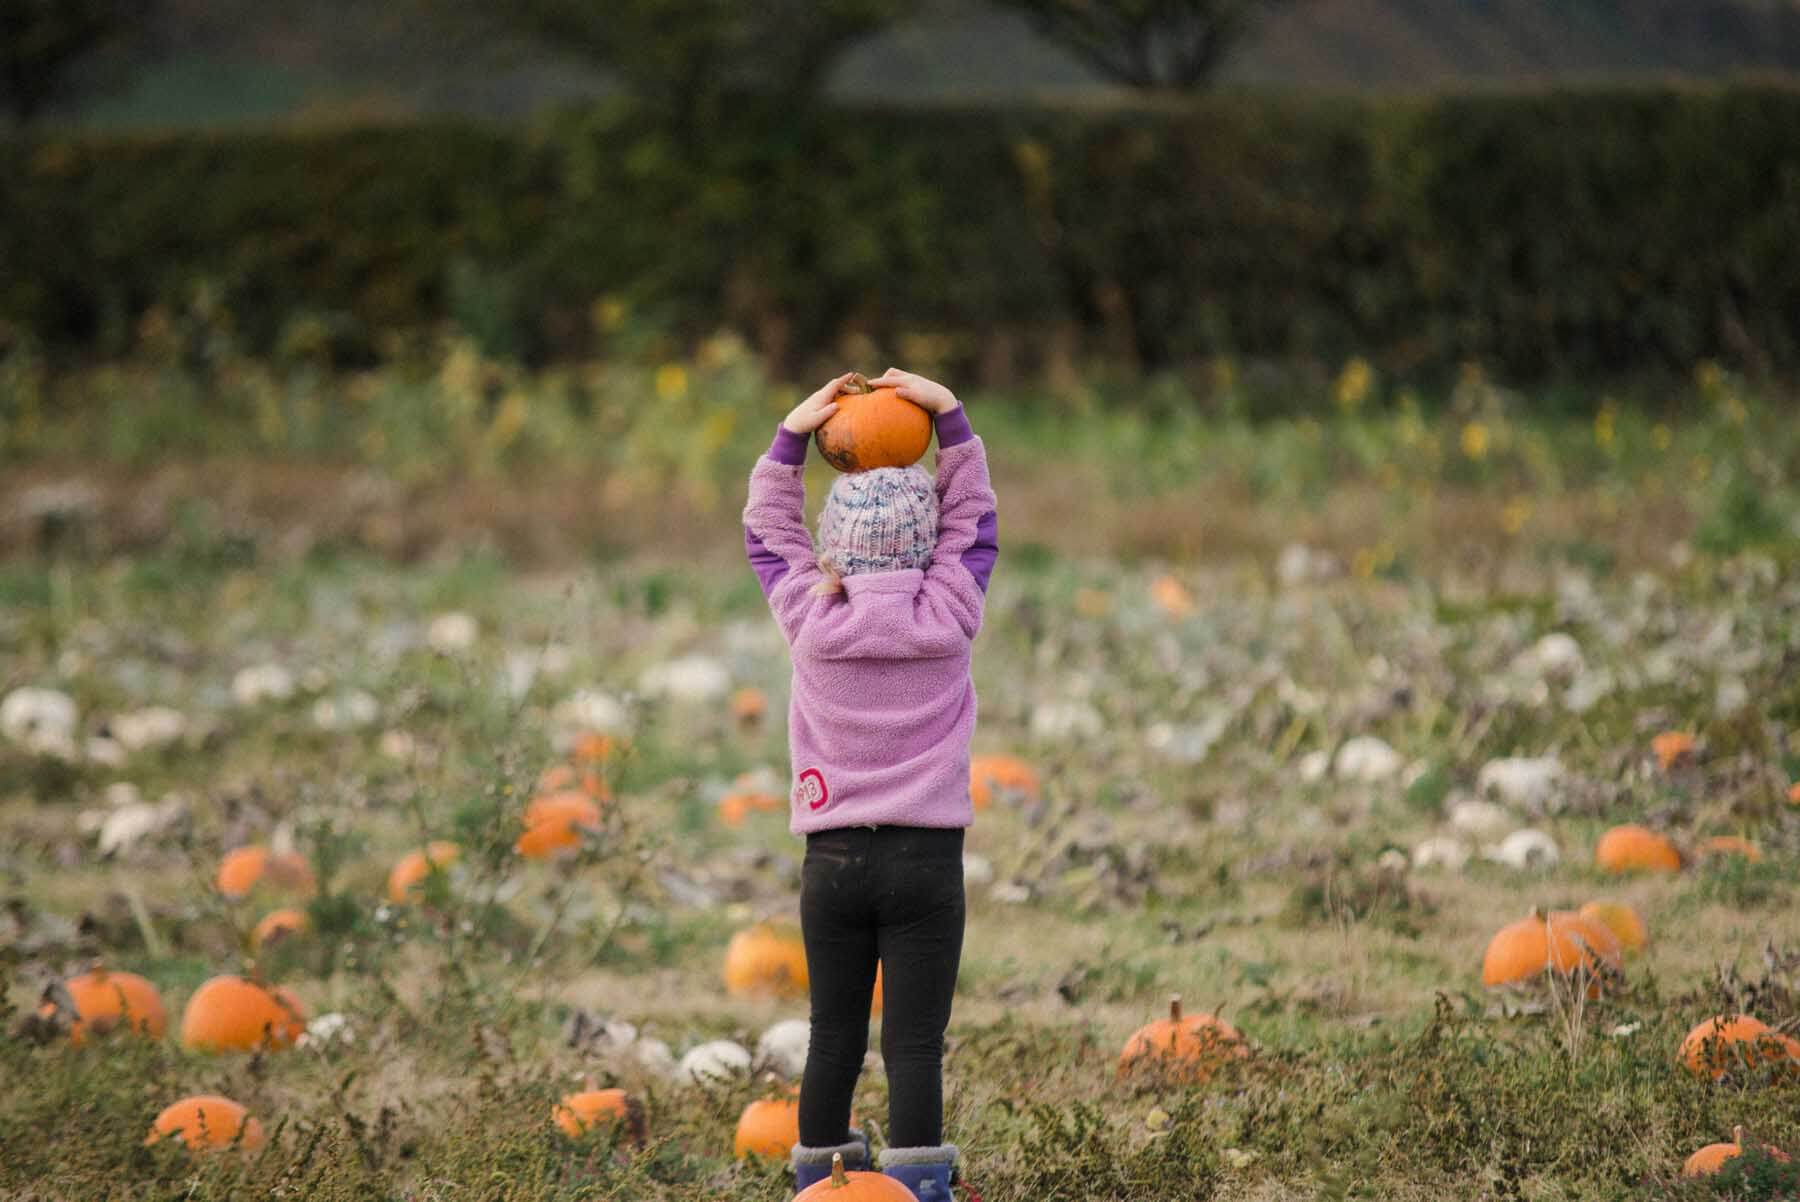 Child holding a Pumpkin above her head at the Kilduff Pumpkin Patch in East Lothian